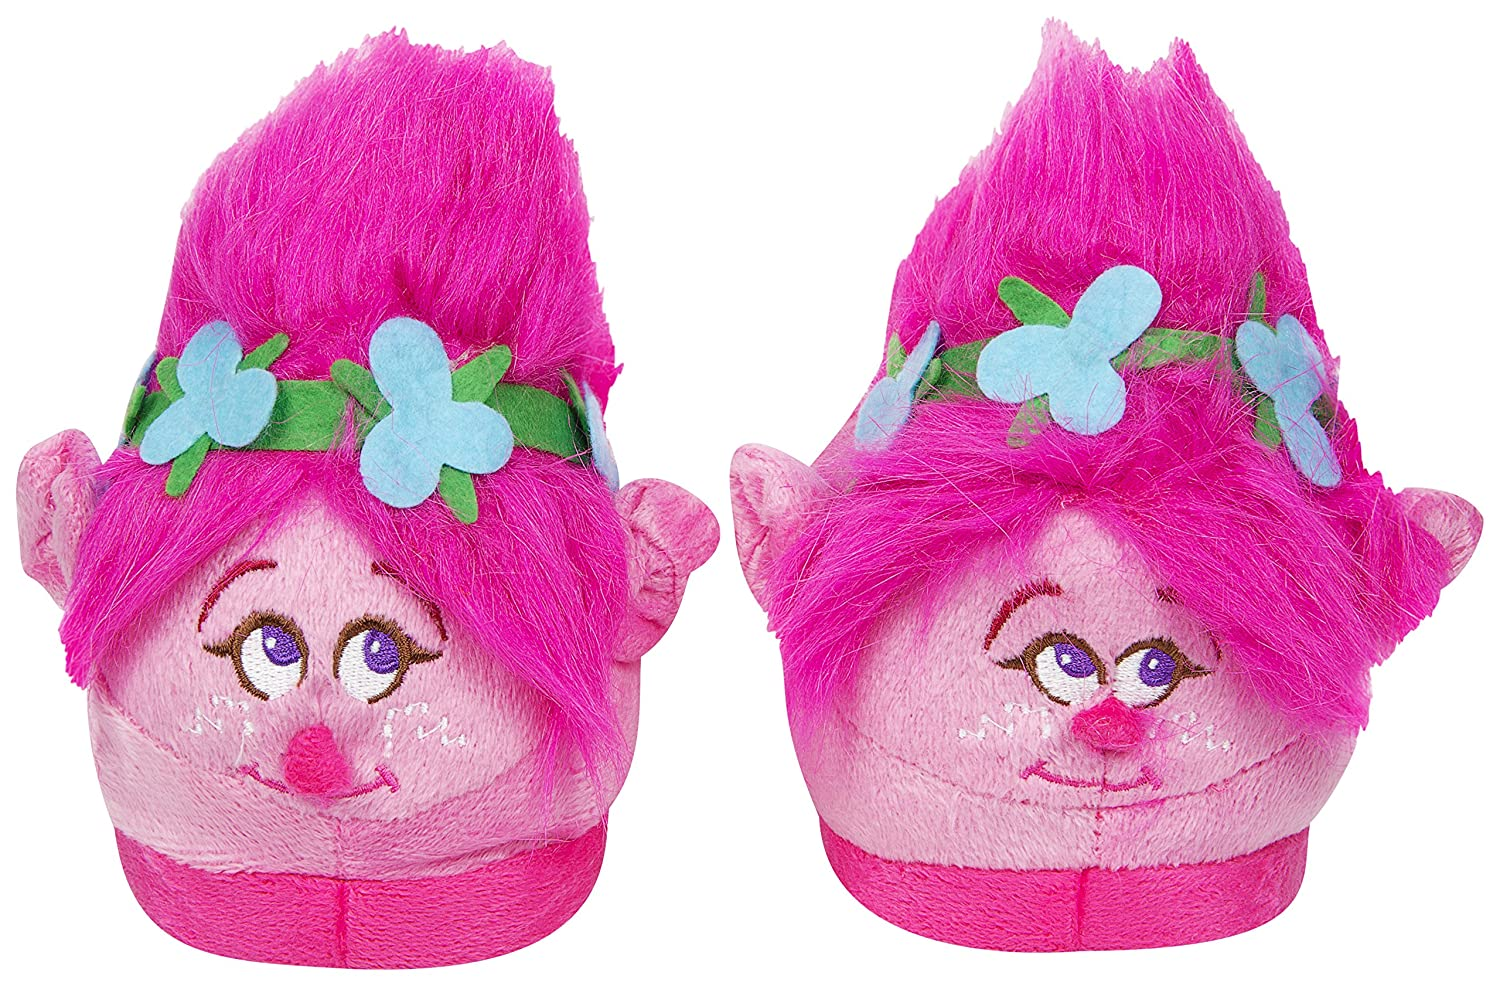 e1f5305f7f9 Trolls Plush Poppy 3D Slippers with Fur Trolls Hair - Perfect Christmas  Present (UK 5.5-7)  Amazon.co.uk  Toys   Games